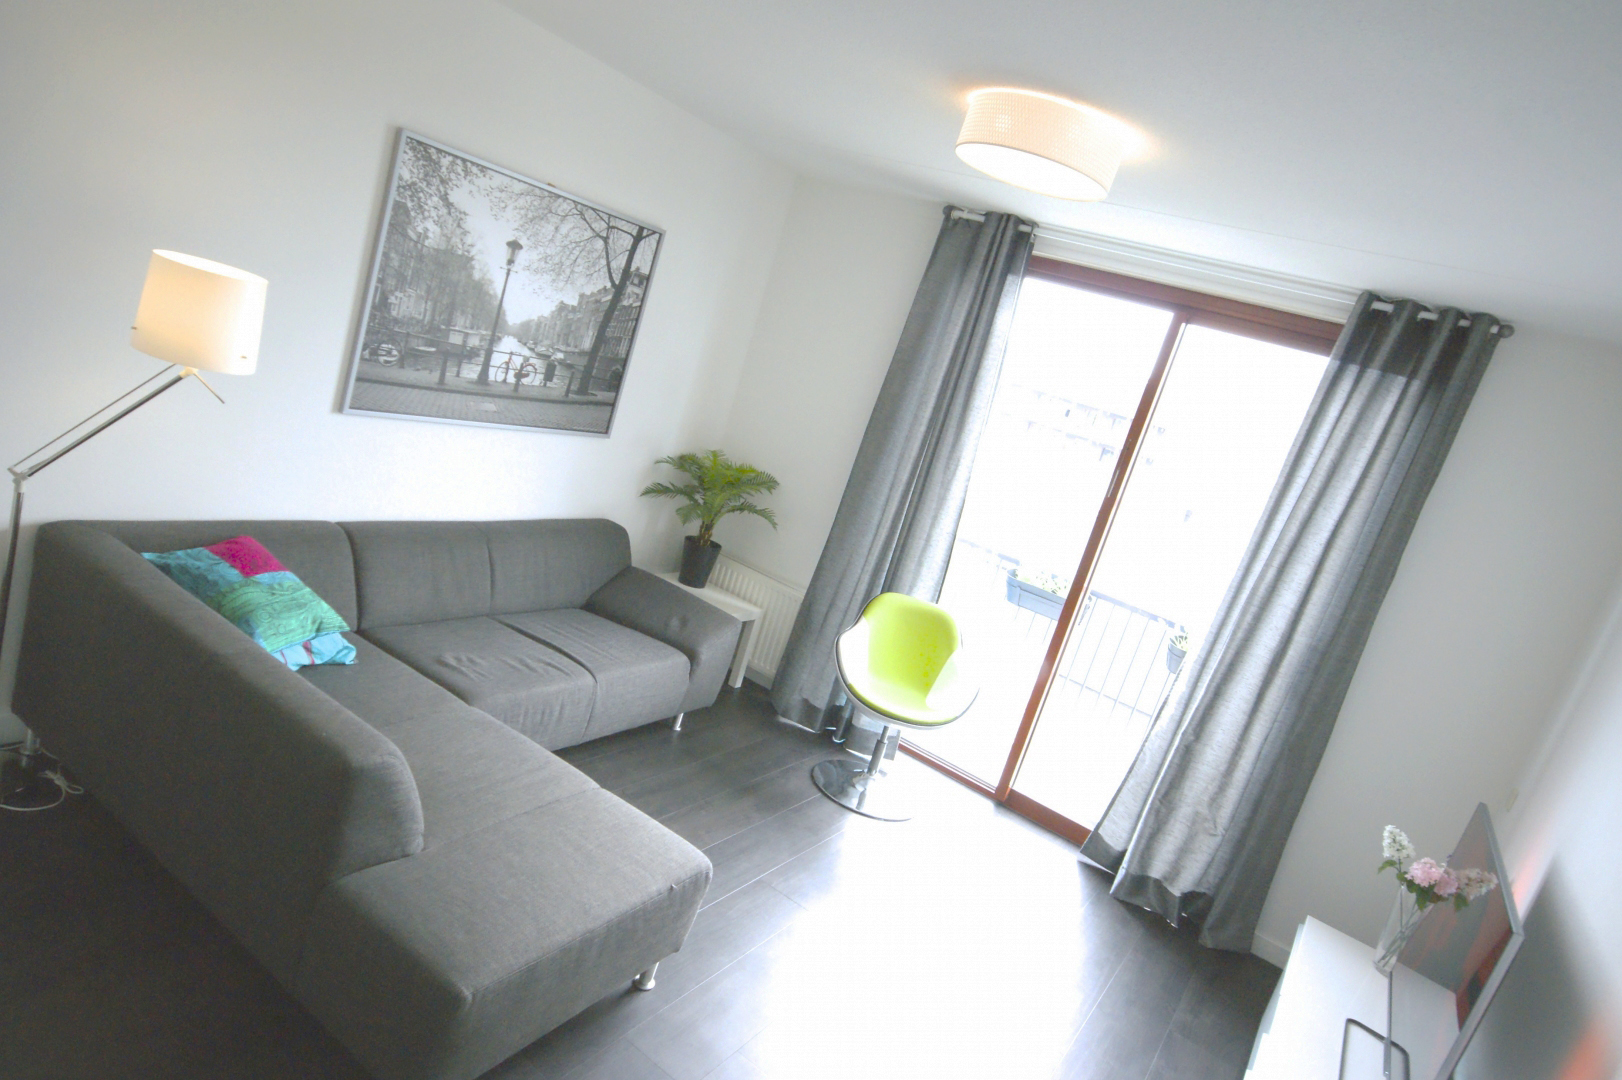 Luxurious furnished apartment Zwolle incl. balcony sauna